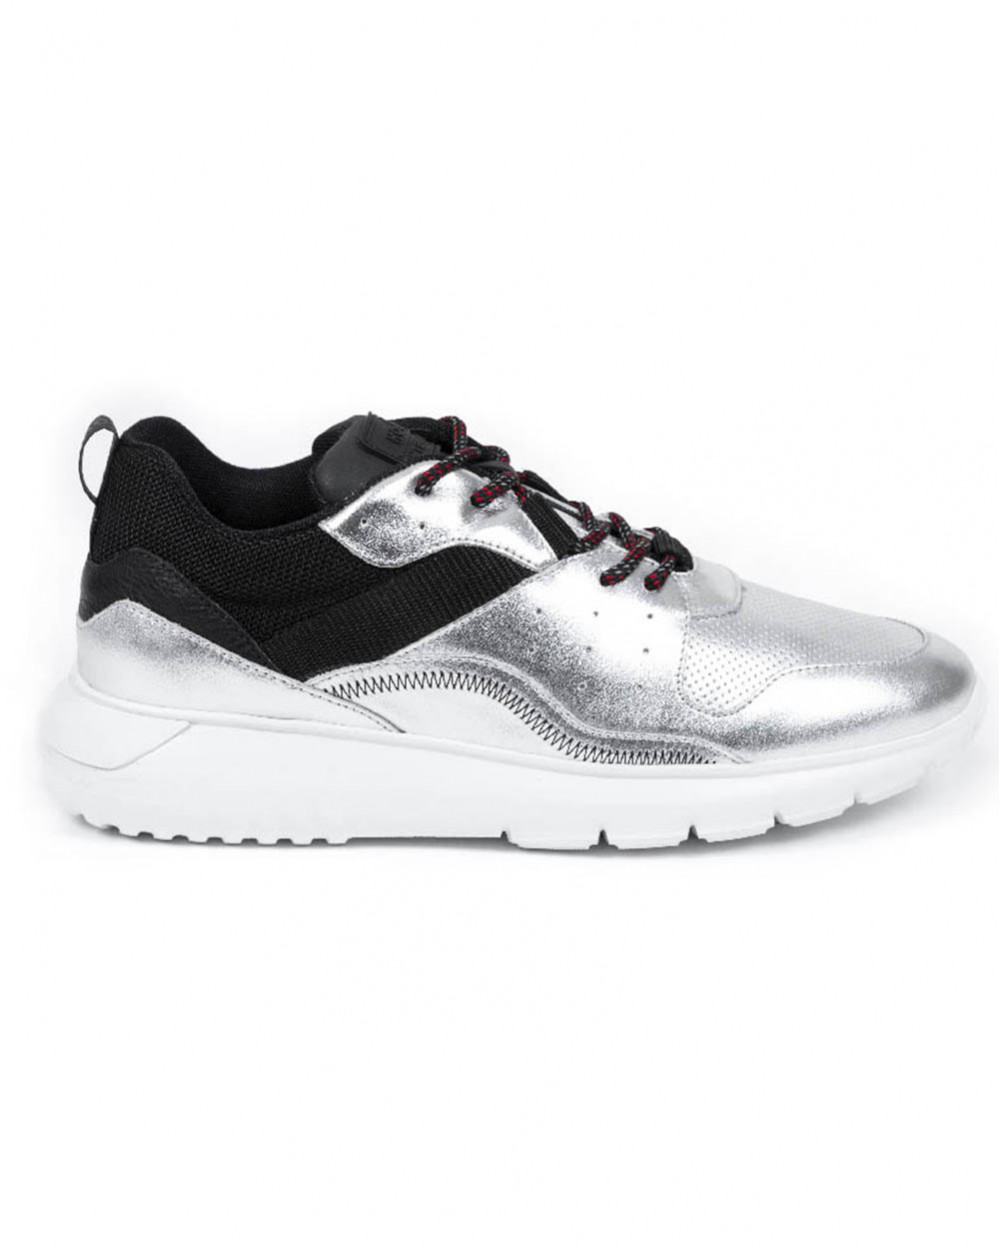 I Cube - Leather and textile sneakers two-tones 45